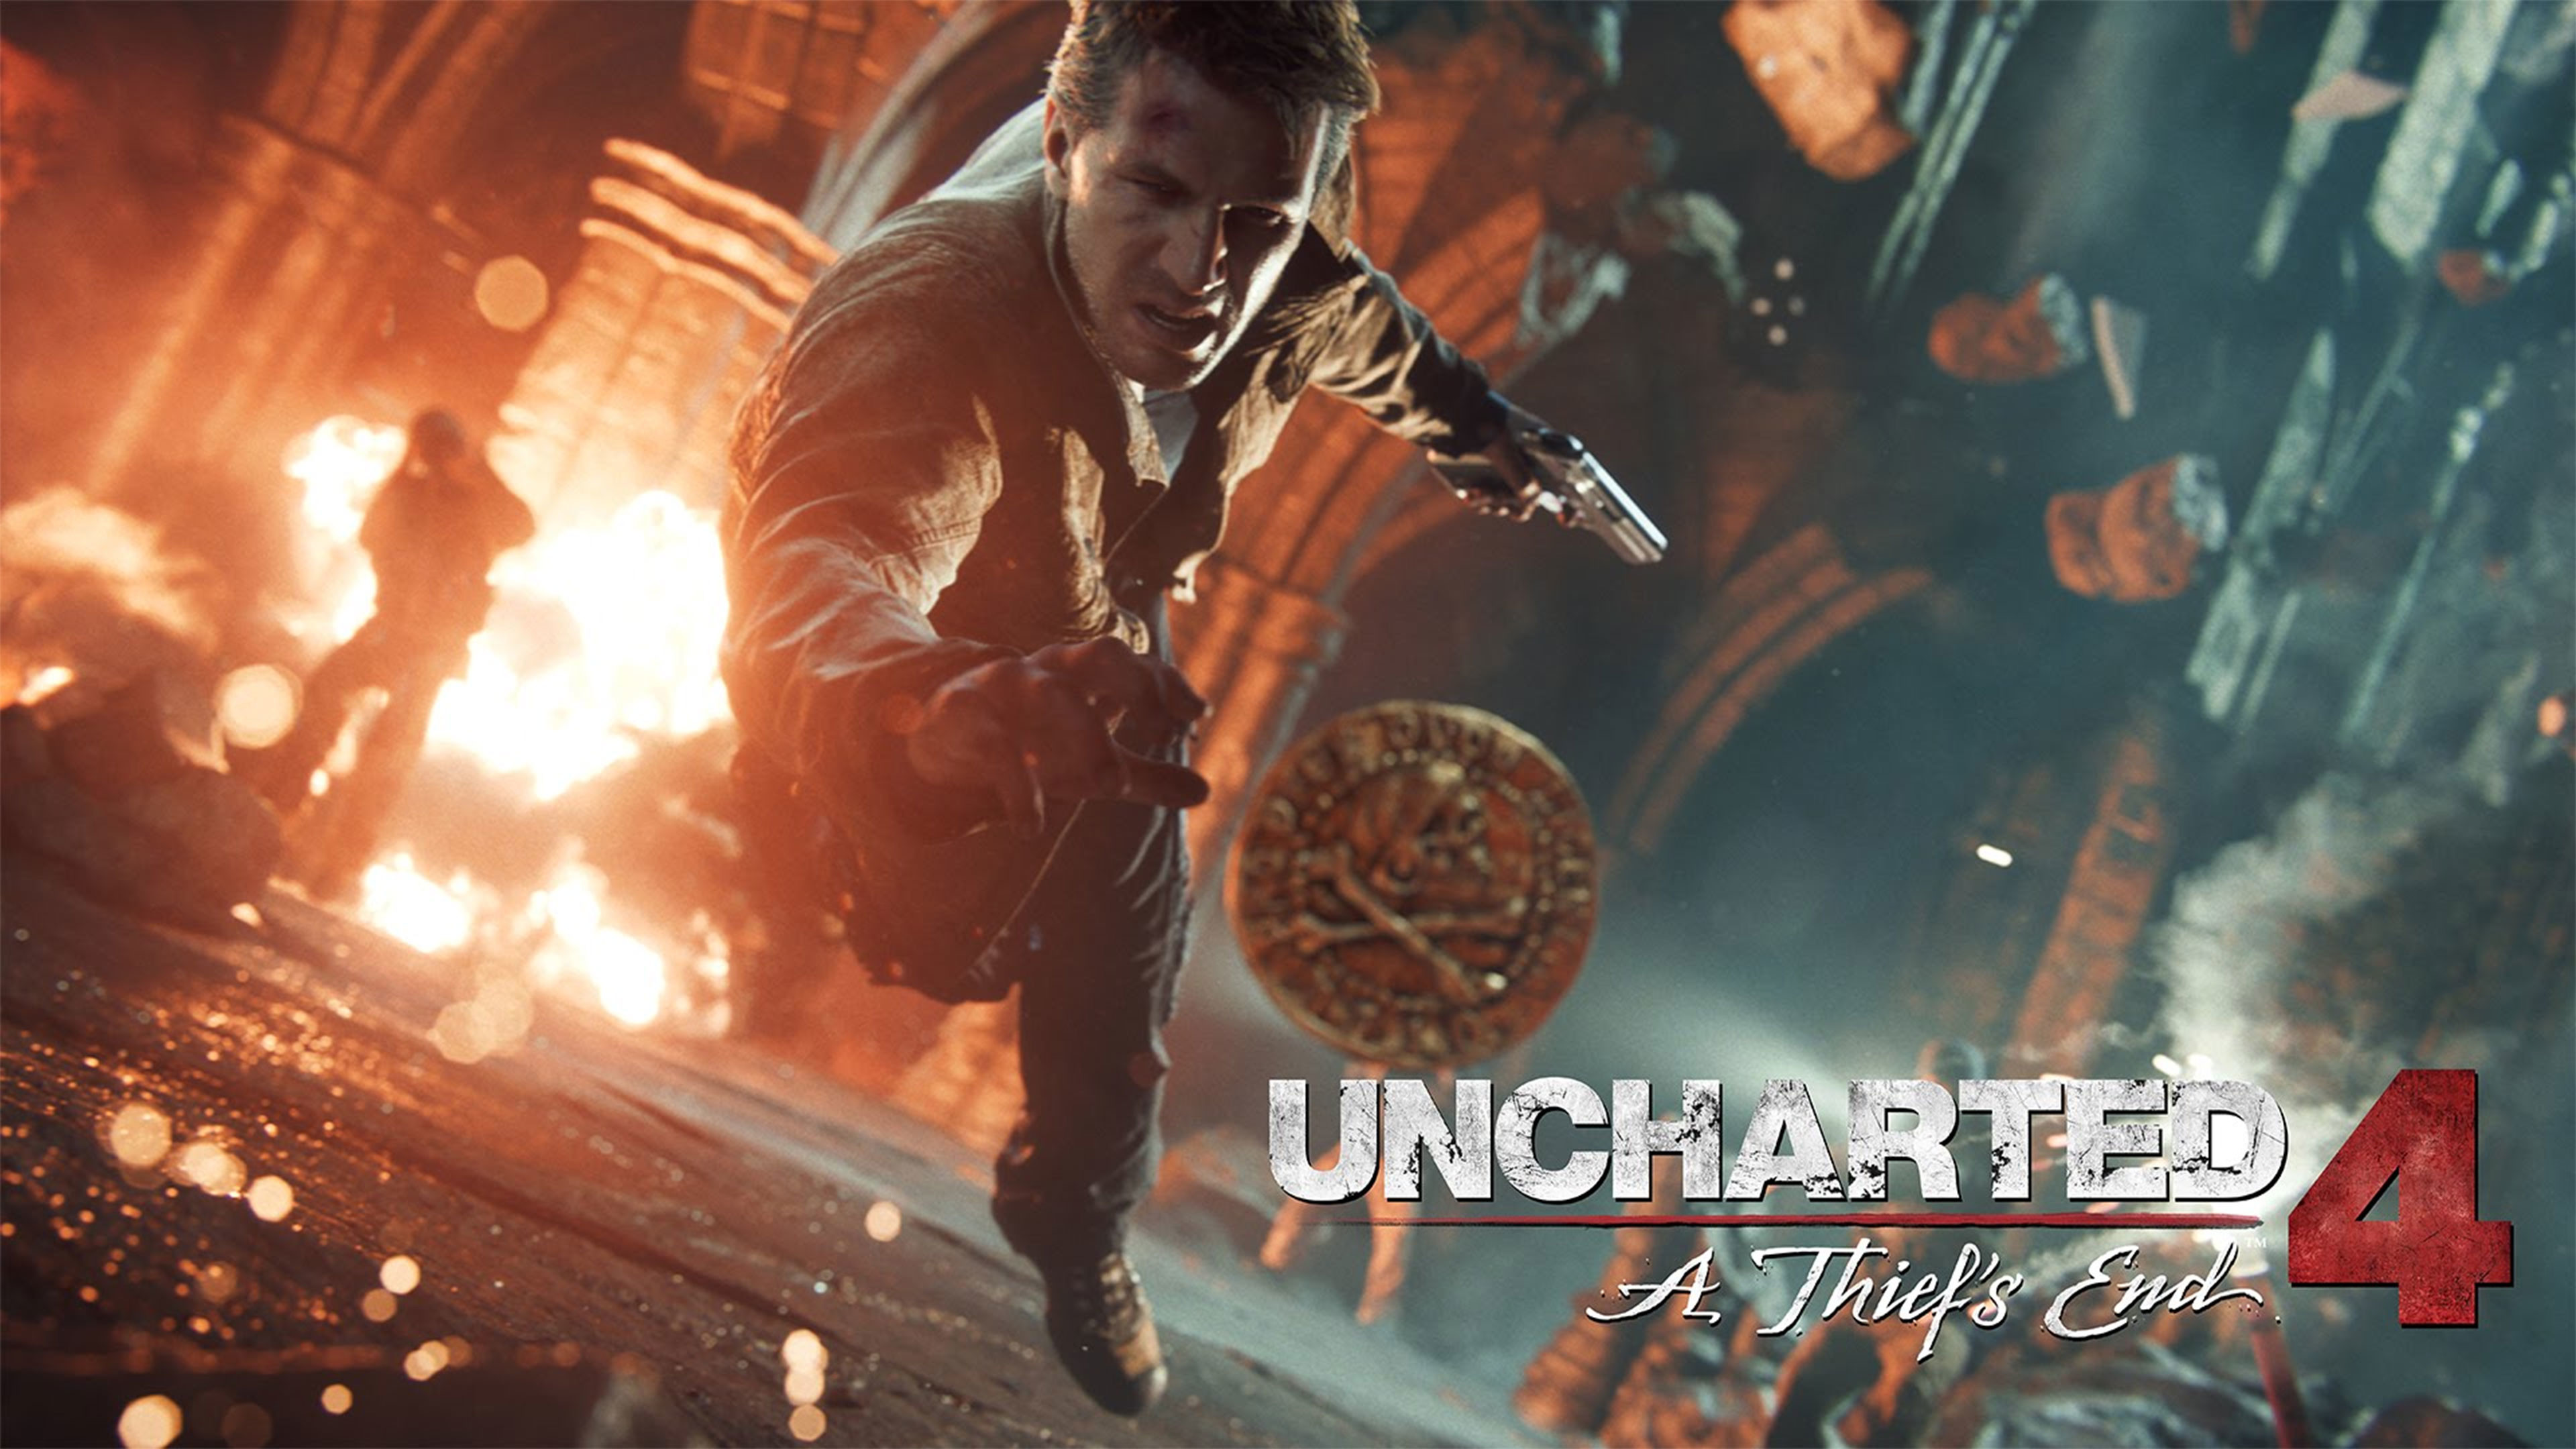 3840x2160 Uncharted 4 A Thief's End 4K Wallpaper ...